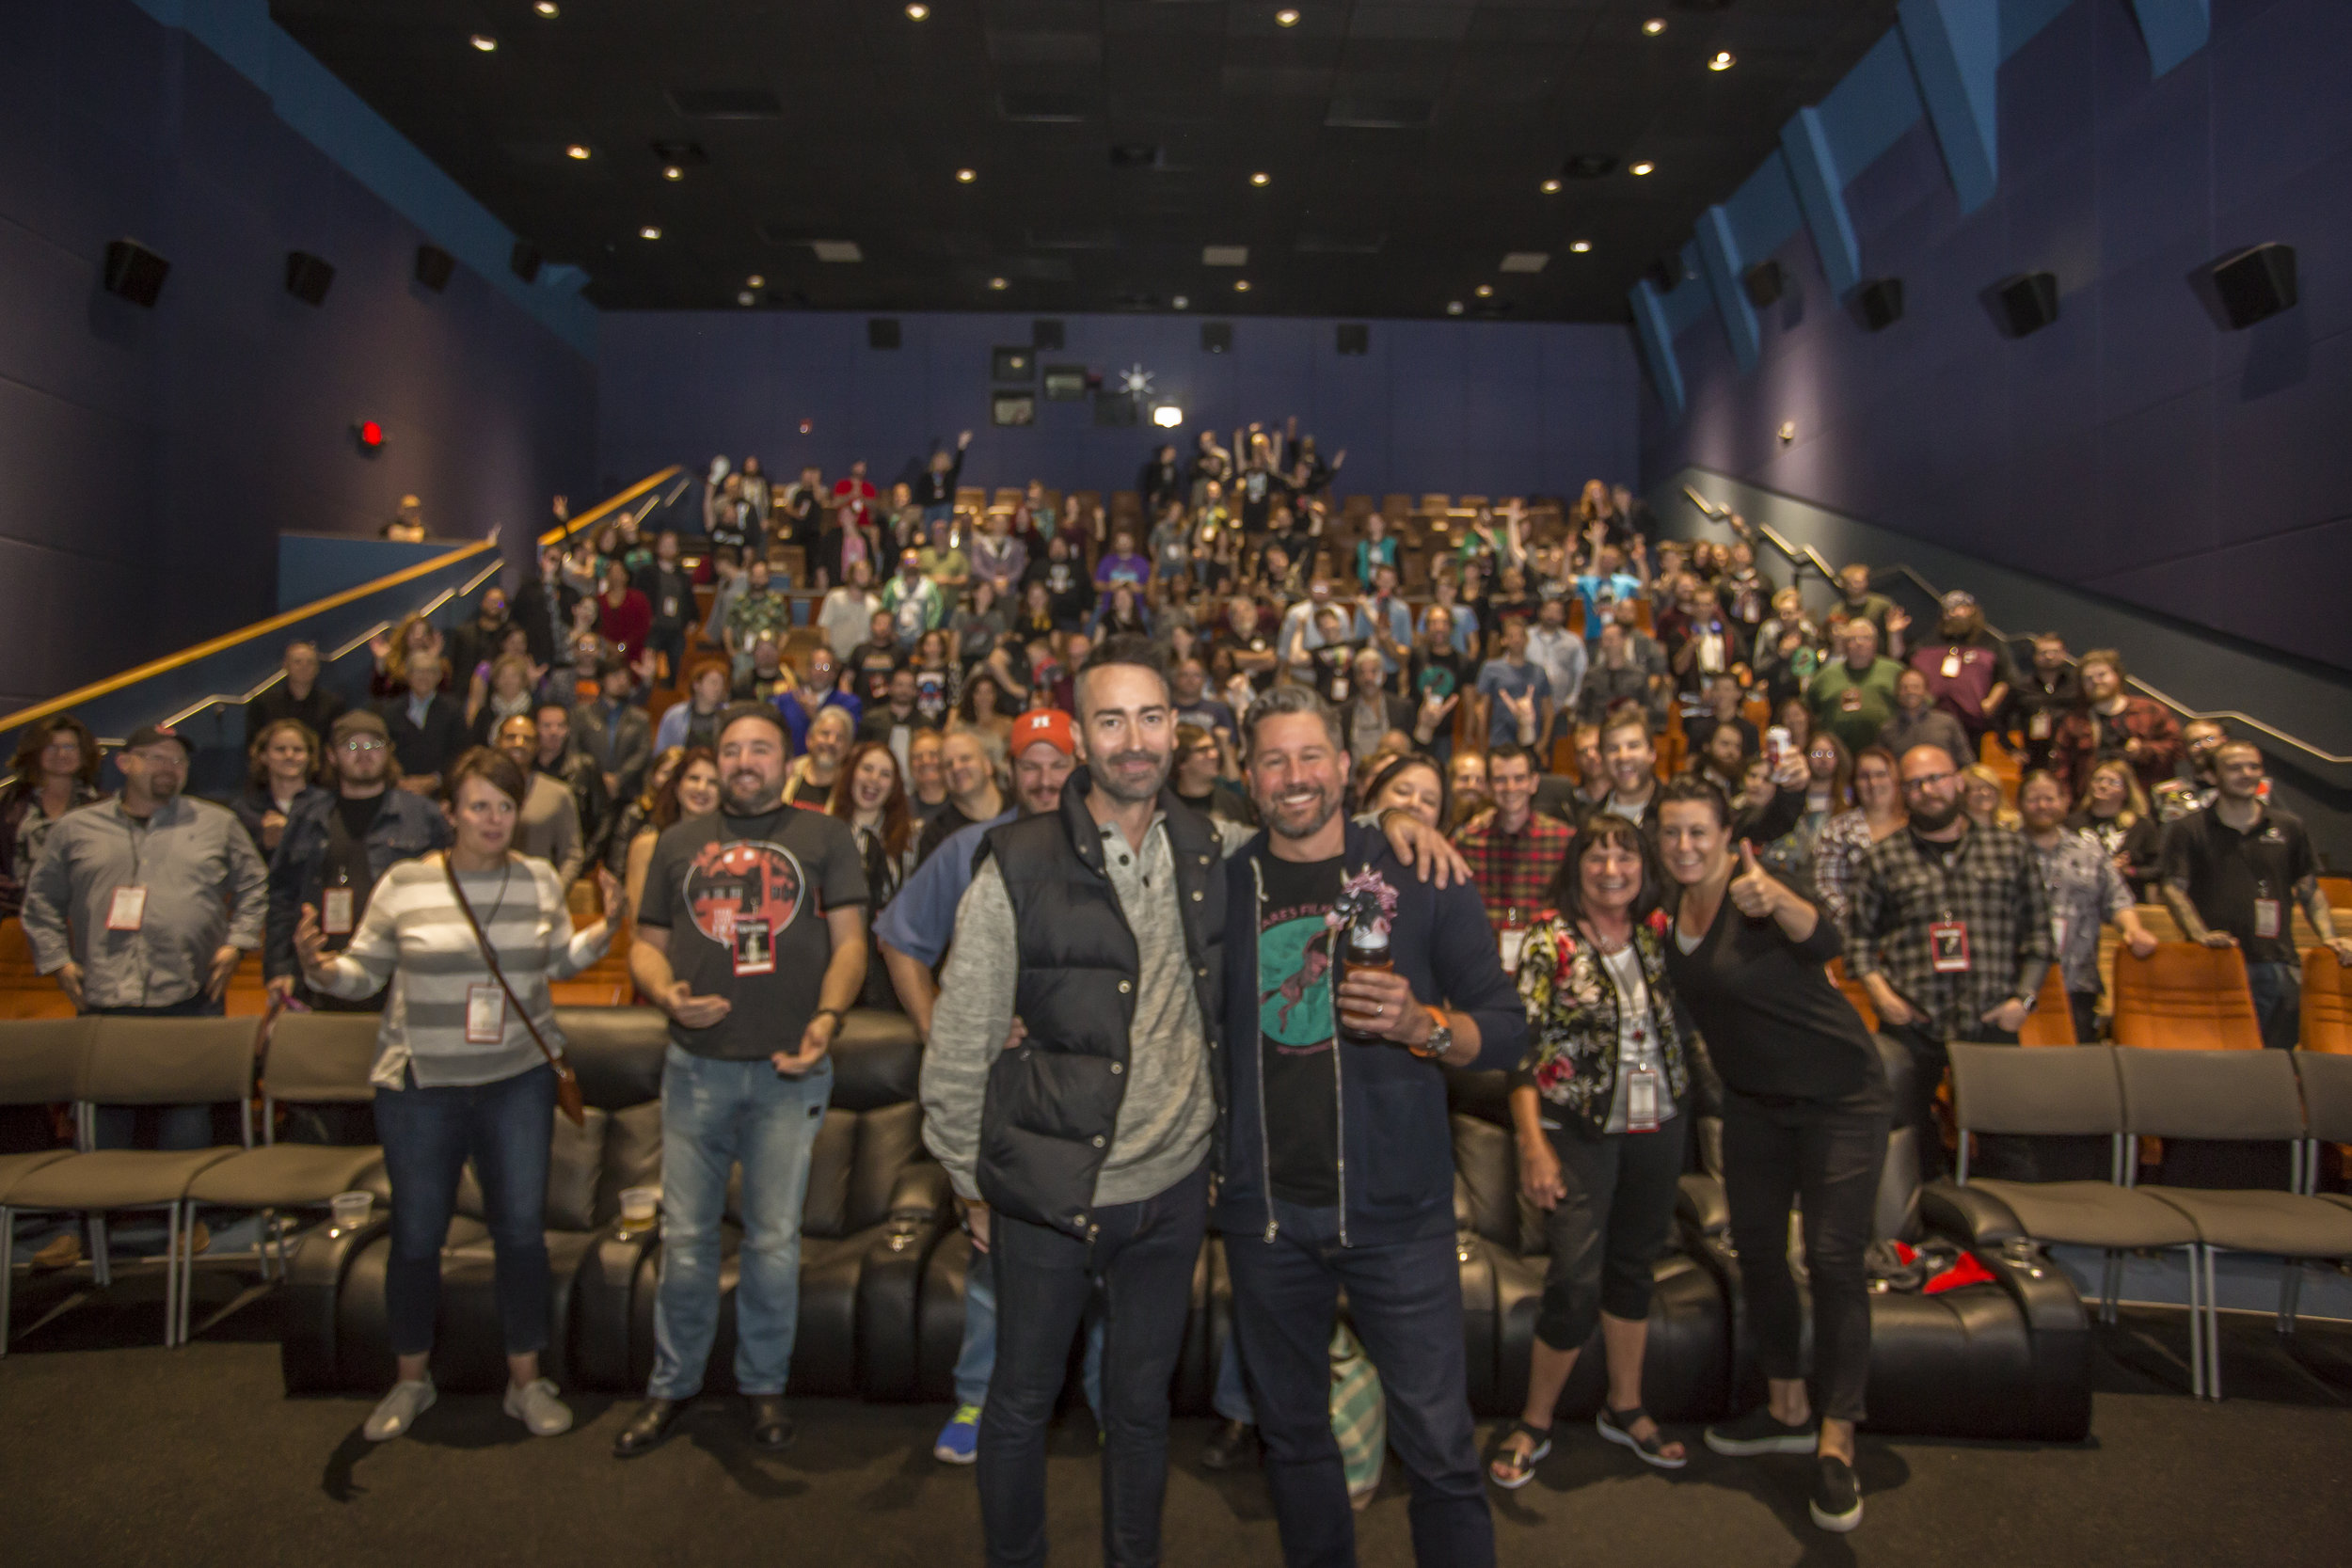 Pictured: Chris Hamel (front, left) and Jason Tostevin (front, right) with the Nightmares Film Festival crowd